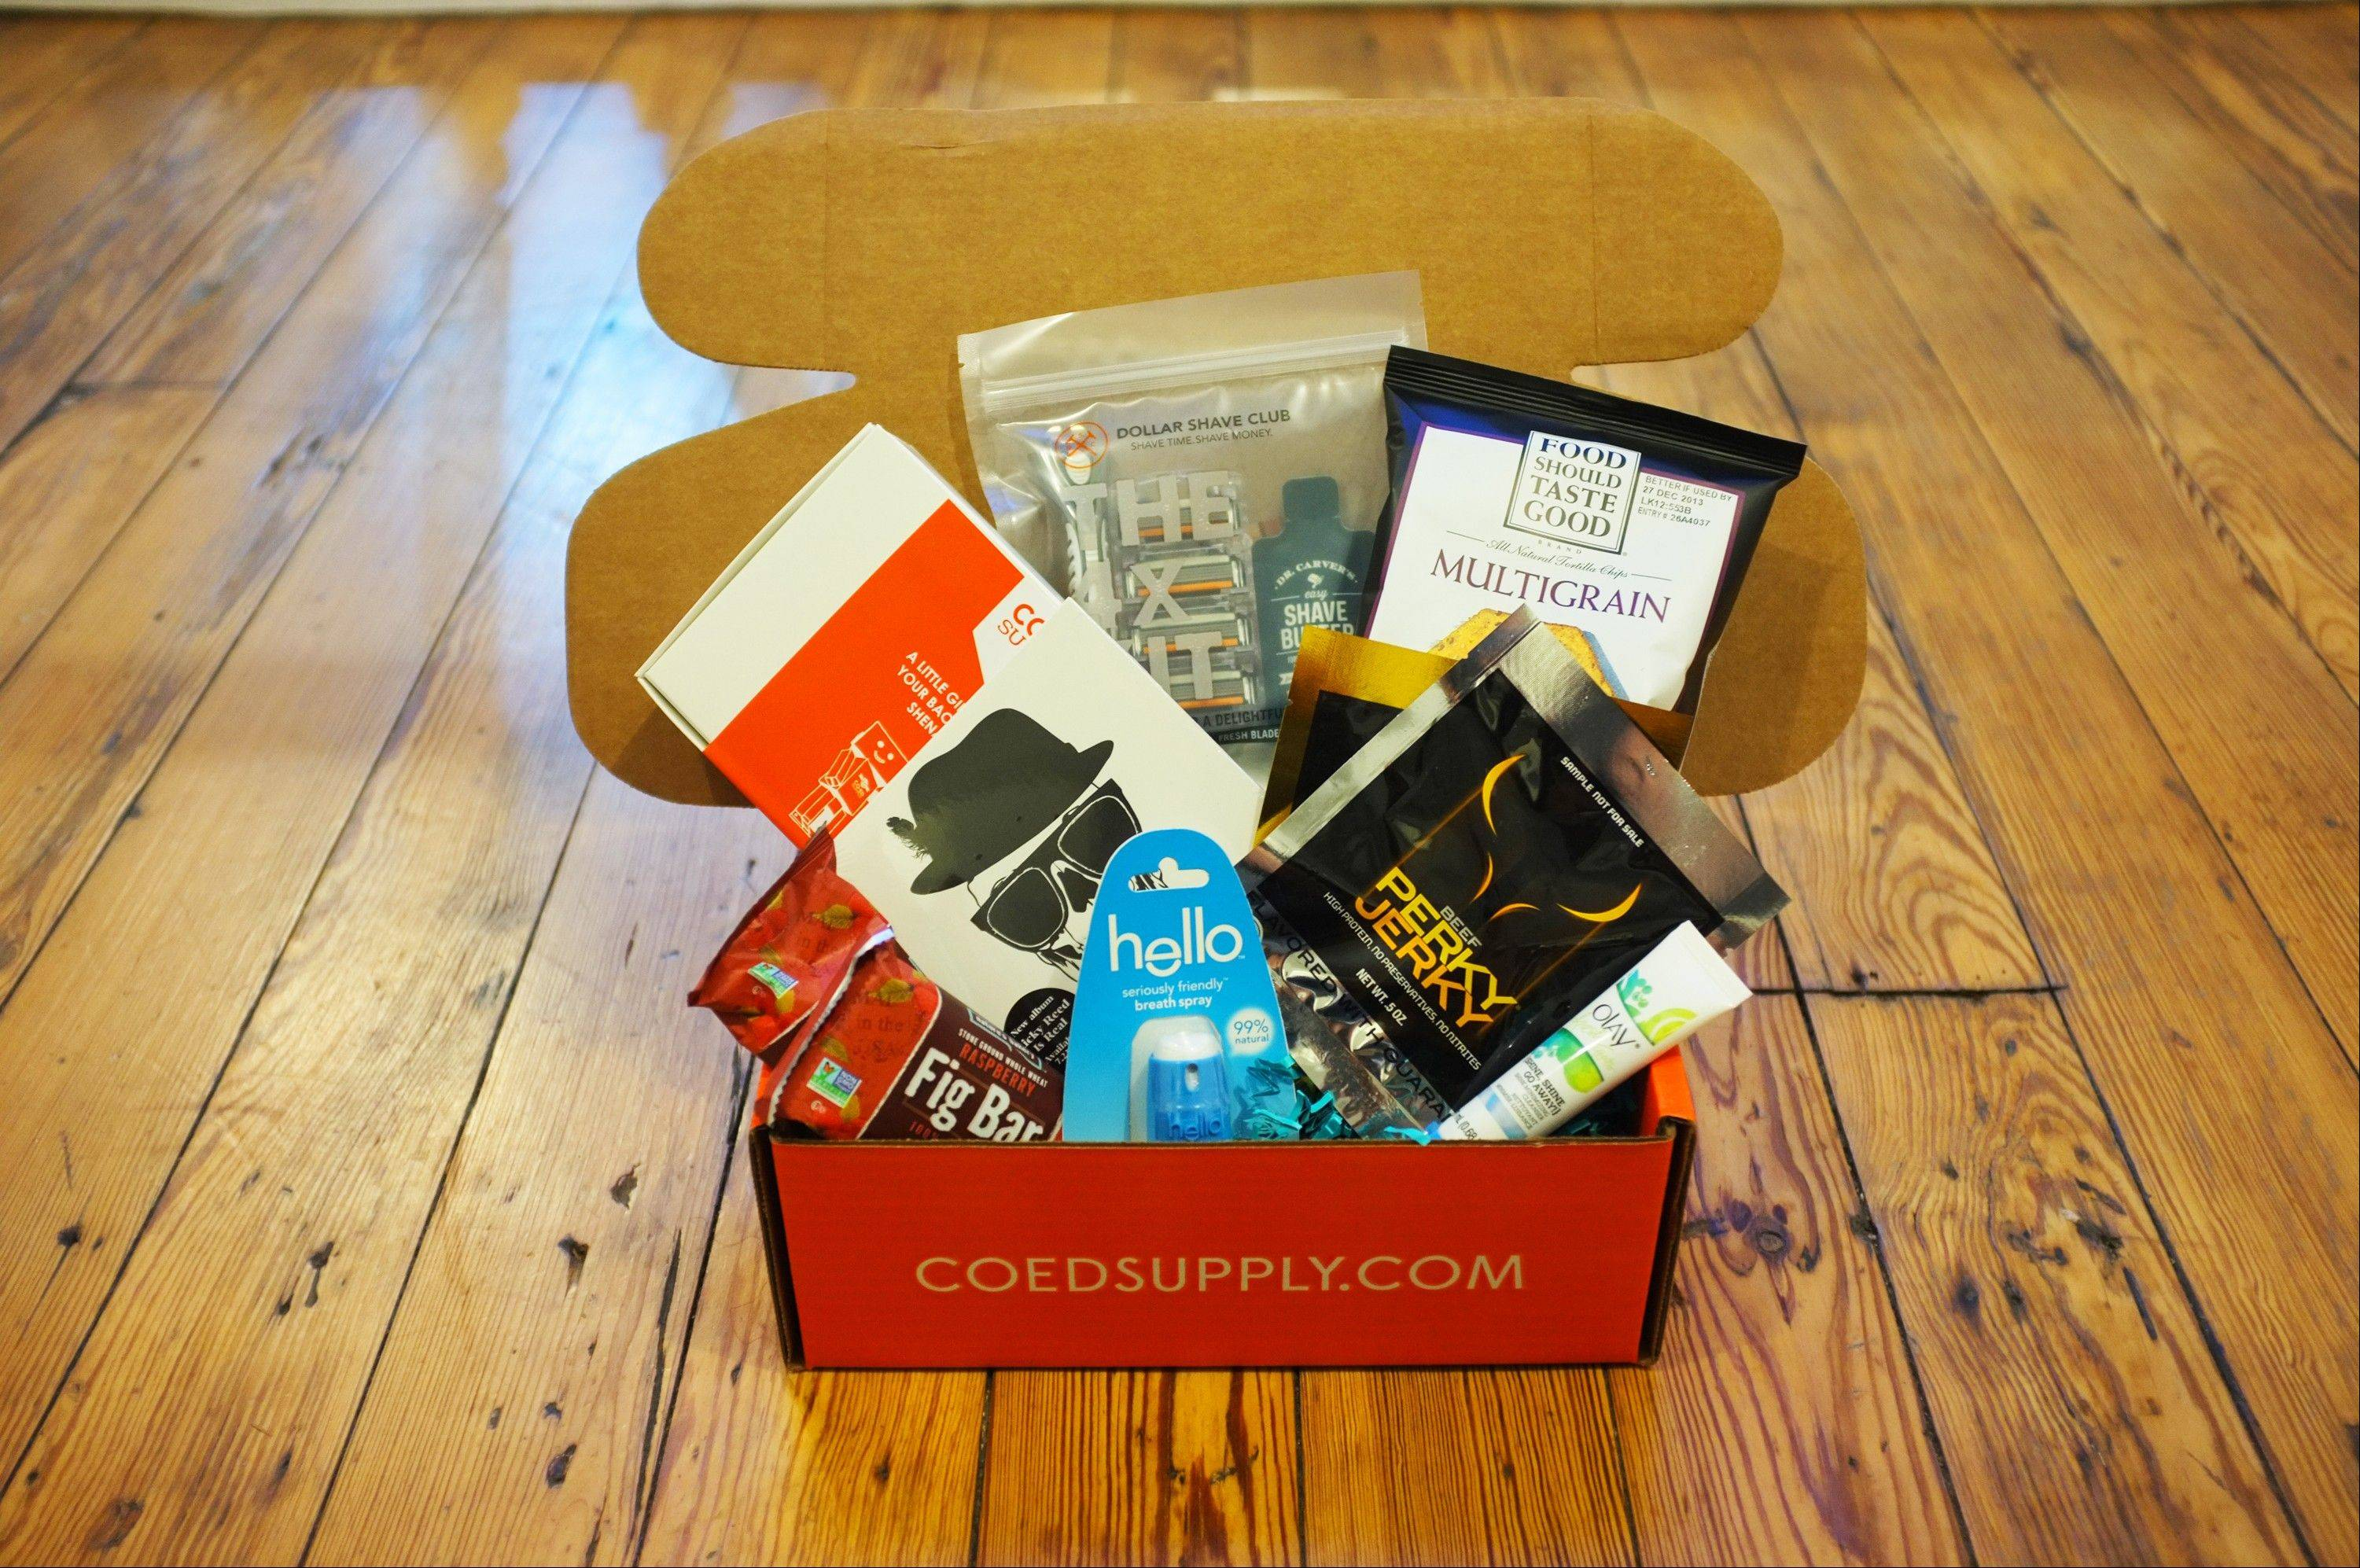 As part of a care package service designed for college students, CoedSupply.com will ship health-food snacks, personal care supplies, entertainment items and more across the country.